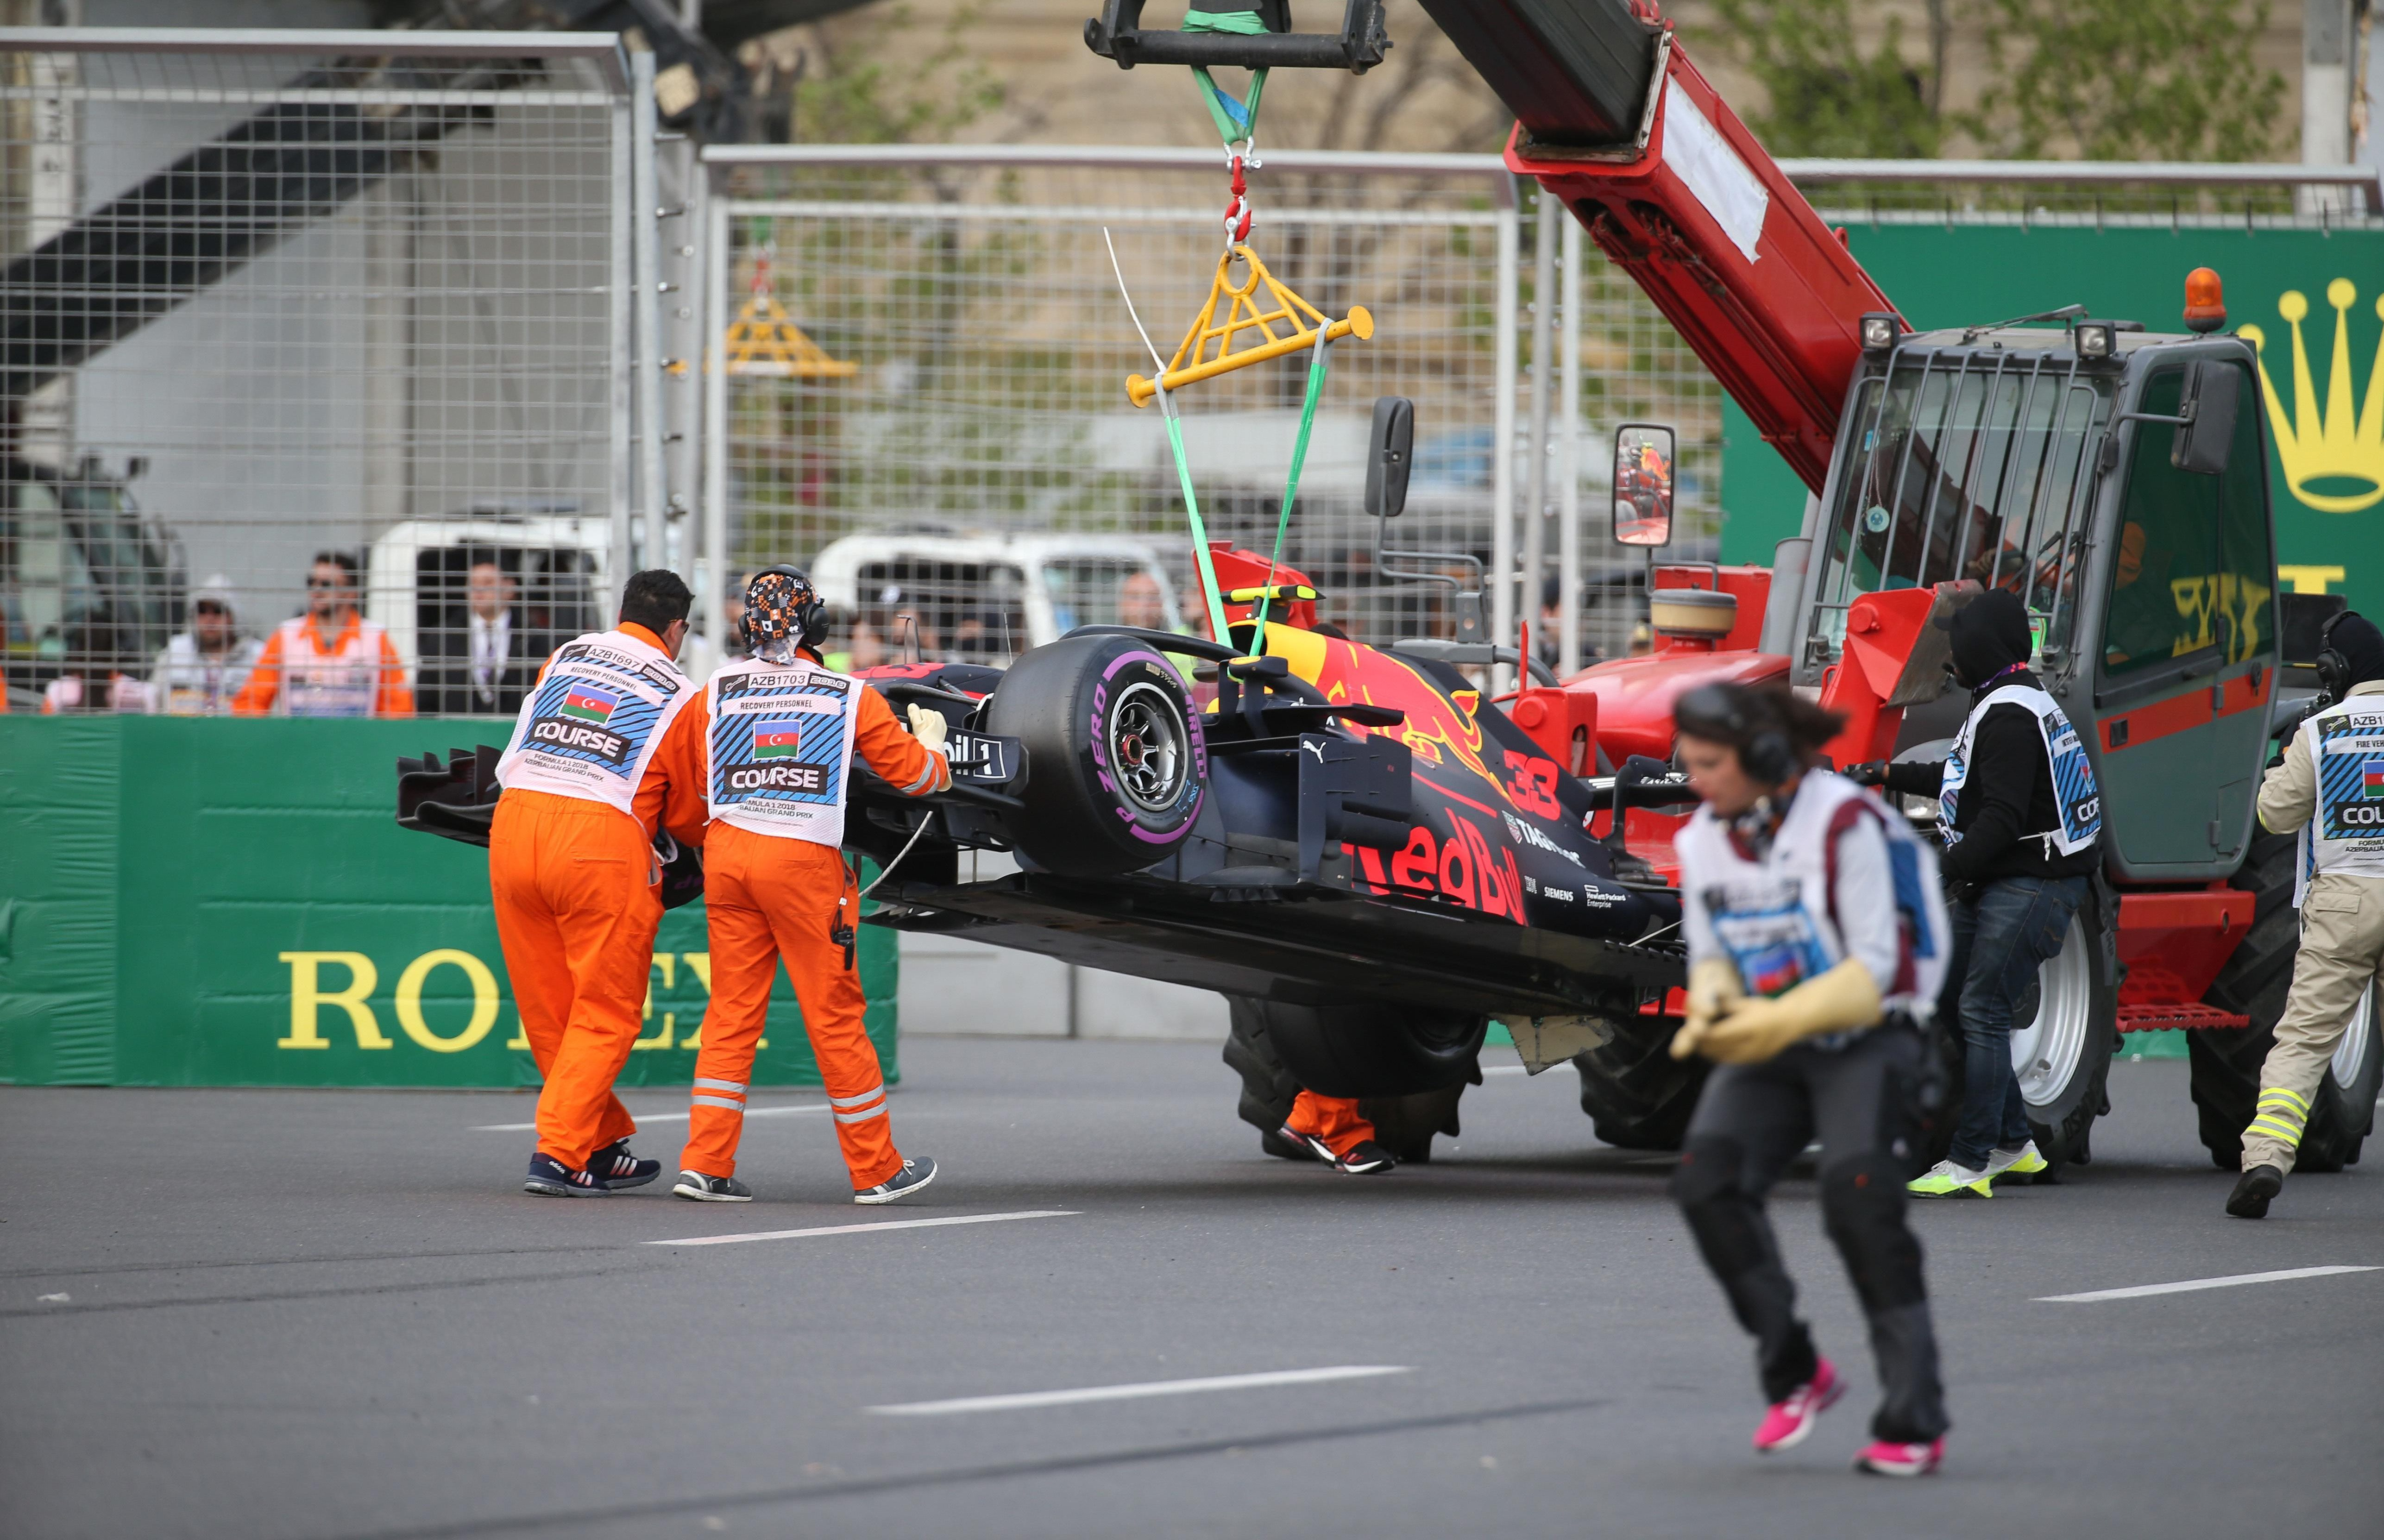 The crashed car of Max Verstappen is taken away during the Azerbaijan GP